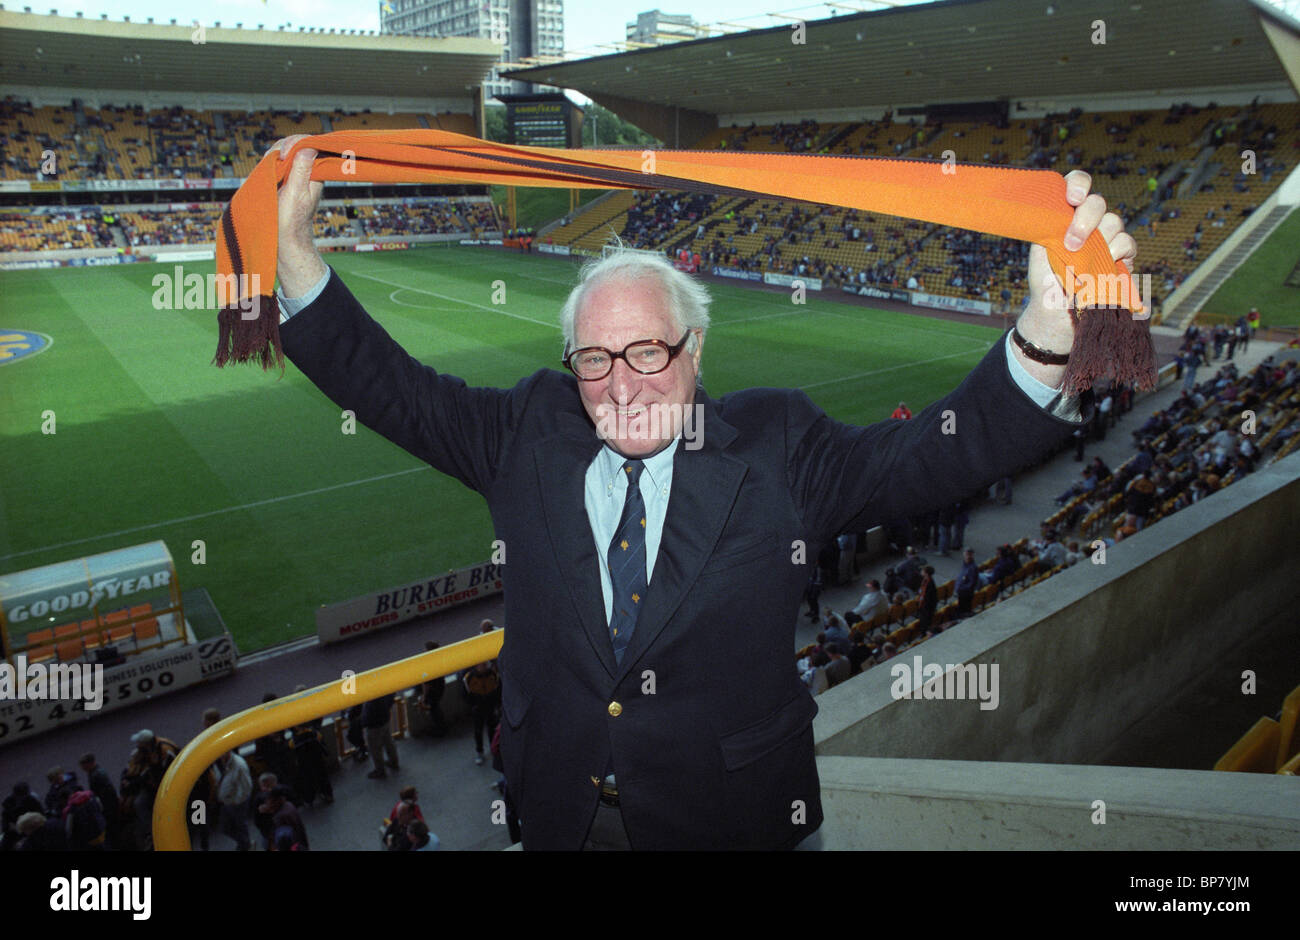 Wolverhampton Wanderers V Charlton Athletic at Molineux 13/9/97 3-1 Sir Jack Hayward after becoming Wolves Chairman. - Stock Image